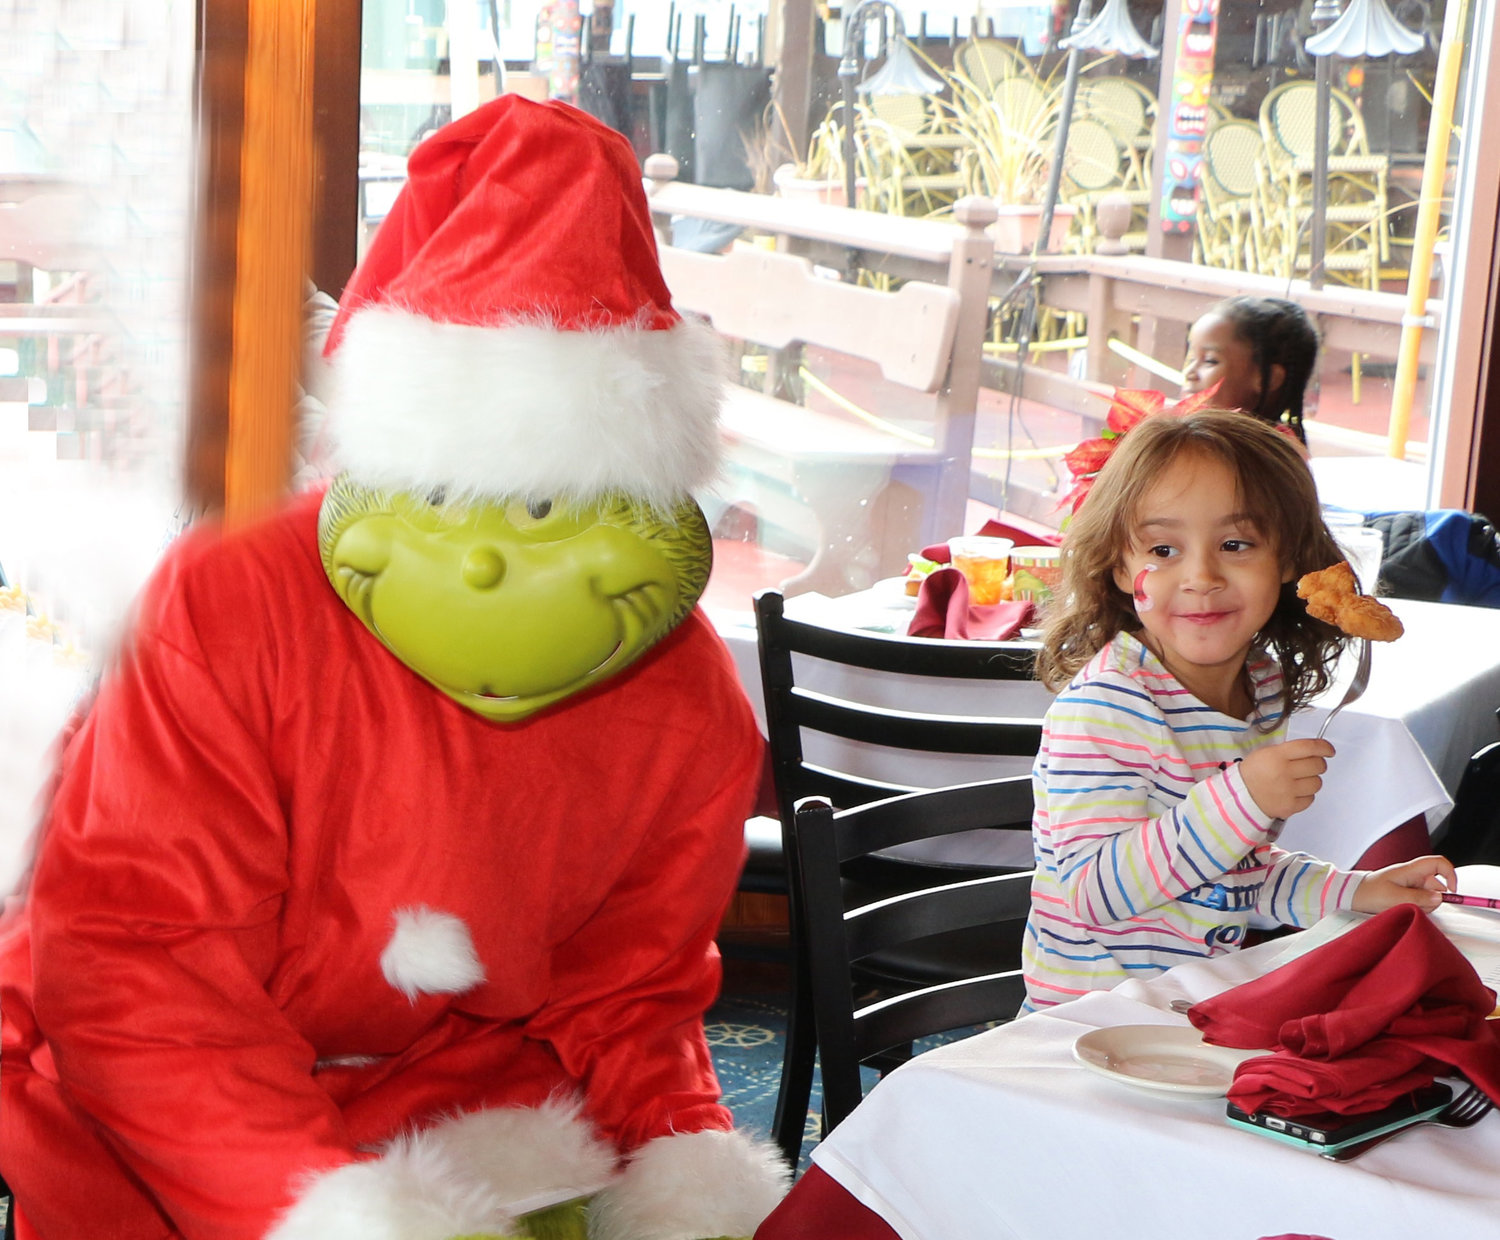 The Grinch sleeked his way around Otto's and surprised Abigail Bince, 4, while she ate lunch.